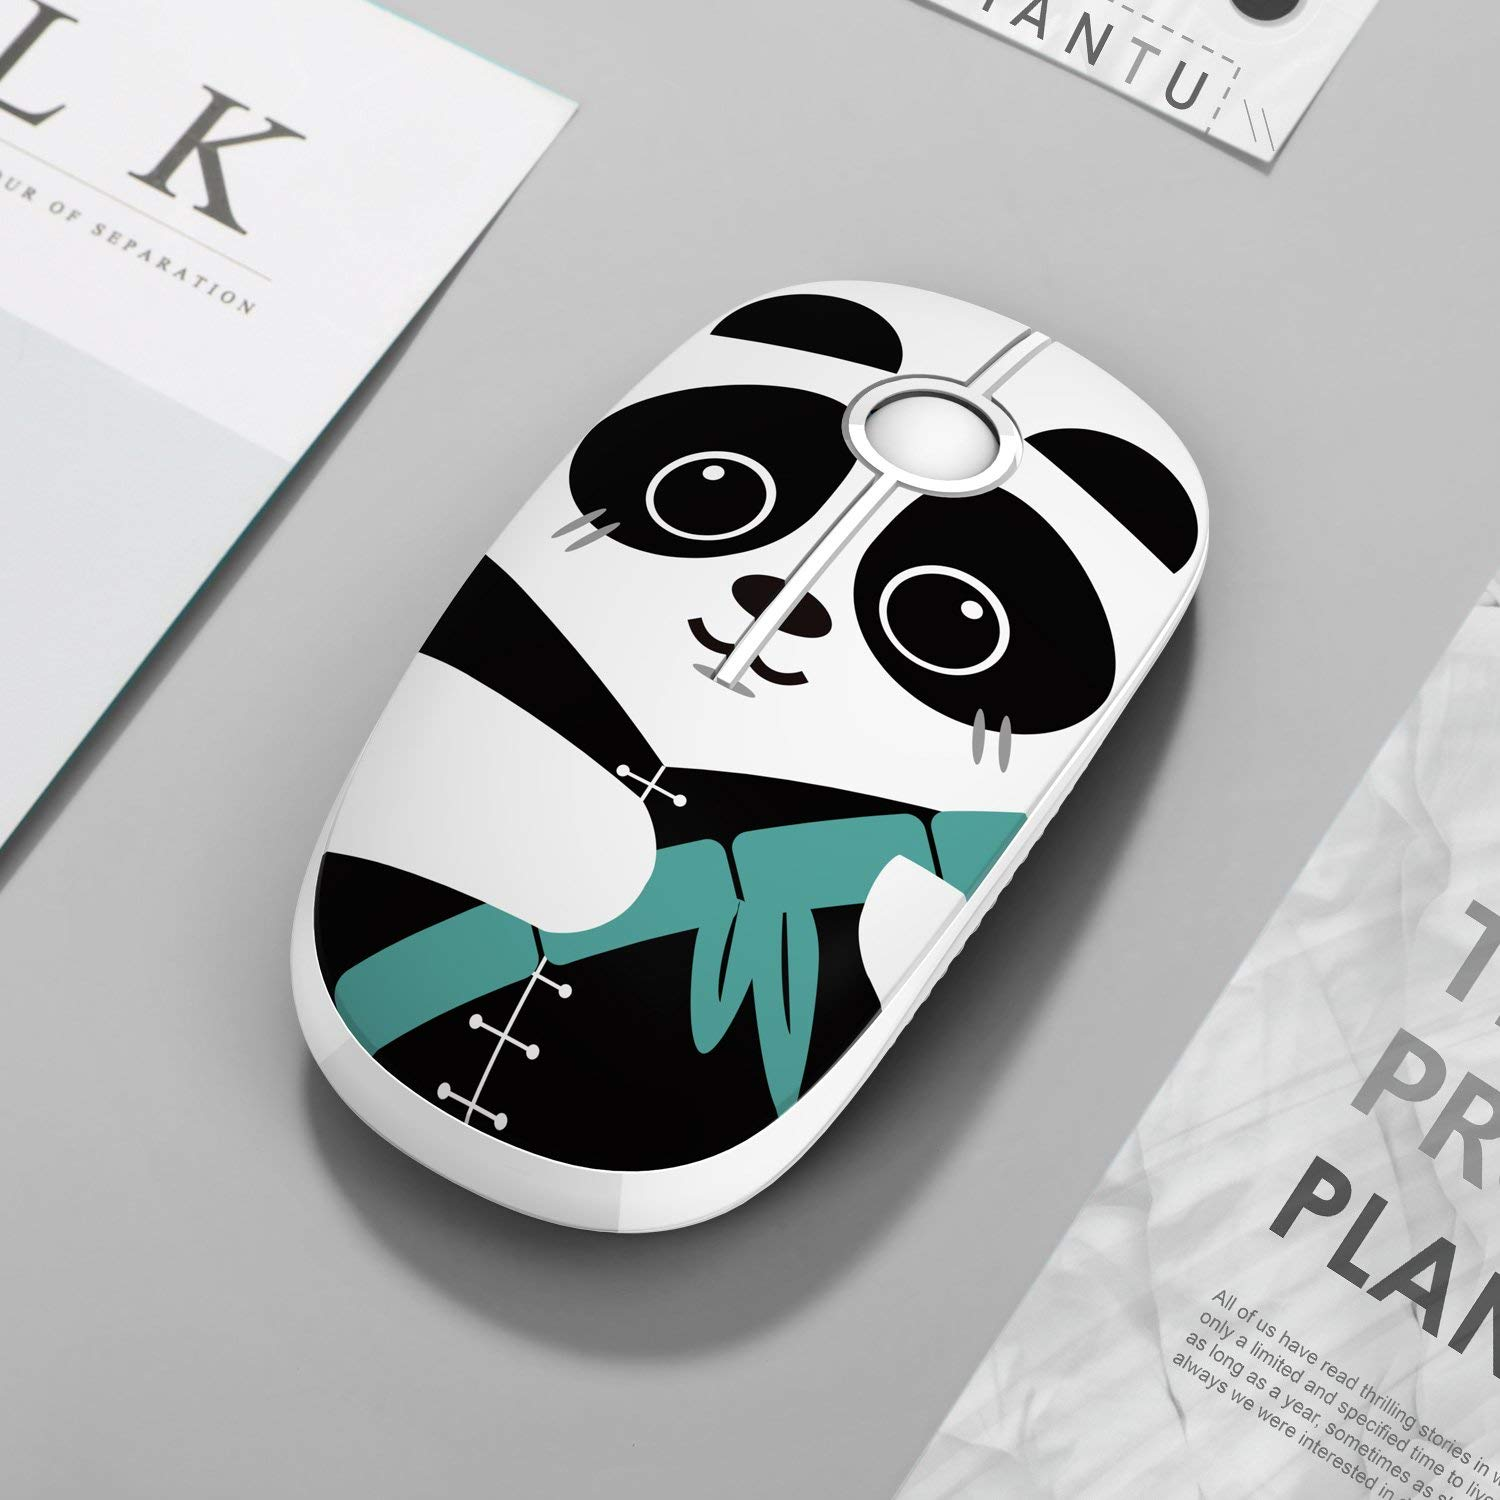 2.4G Cute Panda pattern Slim Wireless mouse with Nano Receiver,Less Noise,Portable Mobile Optical Mice for Notebook, PC, Laptop, Computer, MS001(Panda)